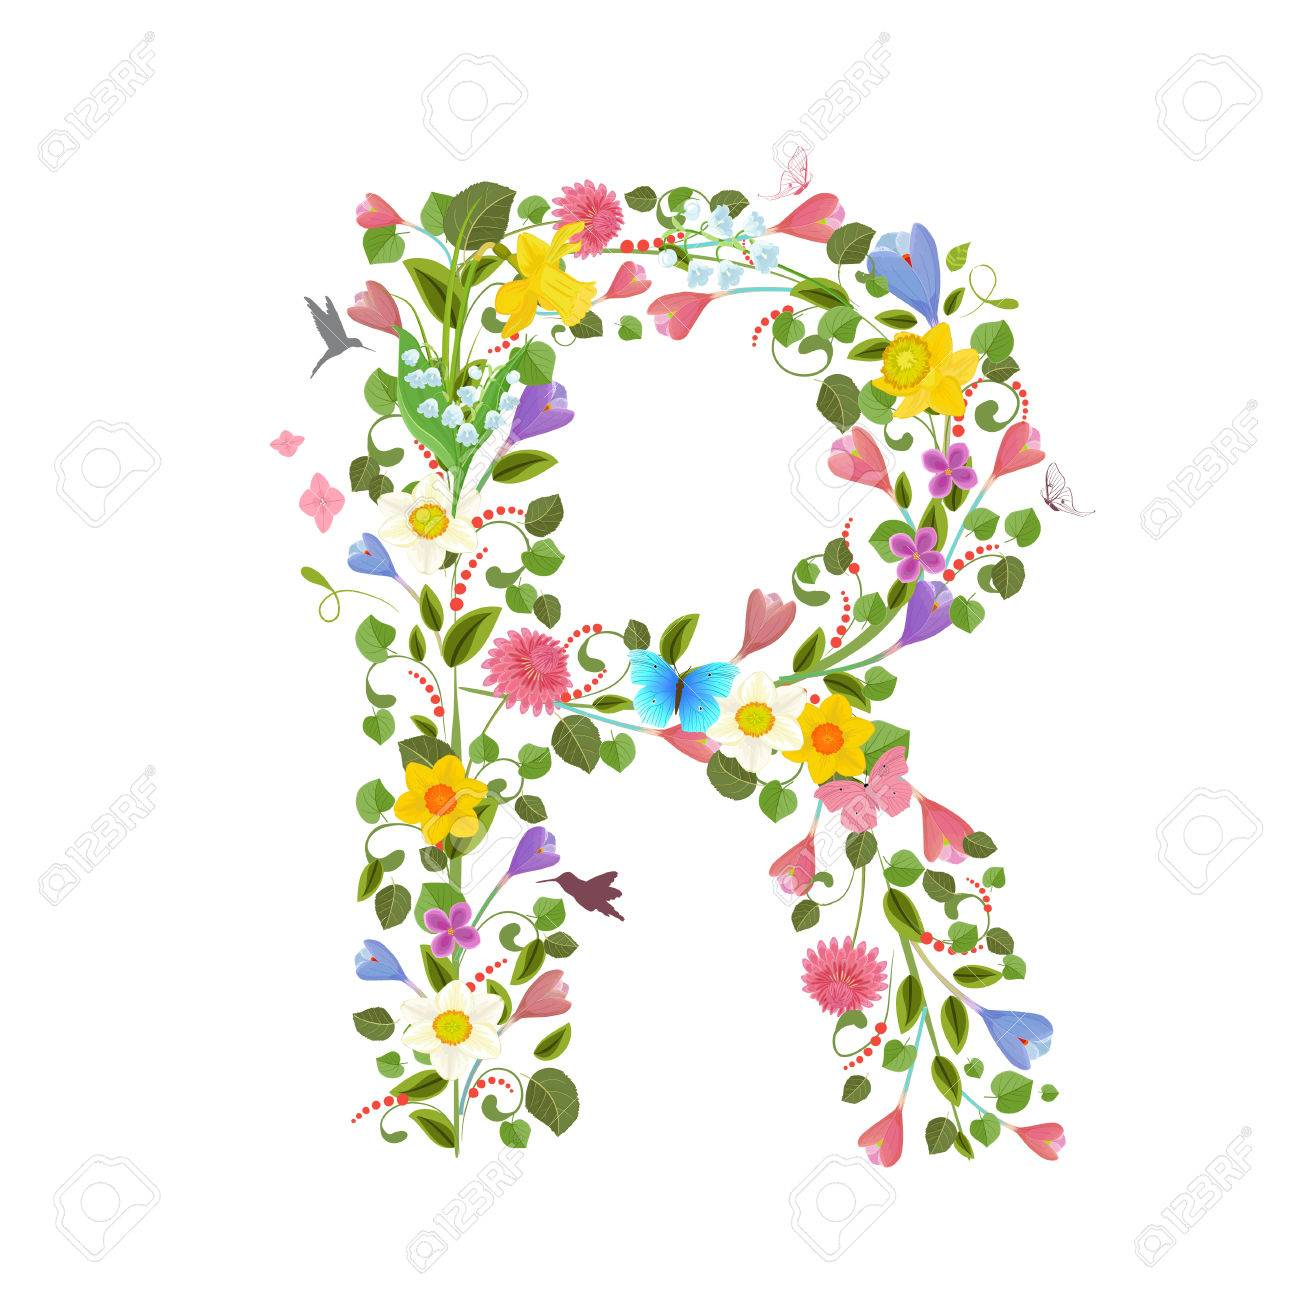 Ornate capital letter font consisting of the spring flowers and ornate capital letter font consisting of the spring flowers and flying hummingbirds floral letter r altavistaventures Choice Image